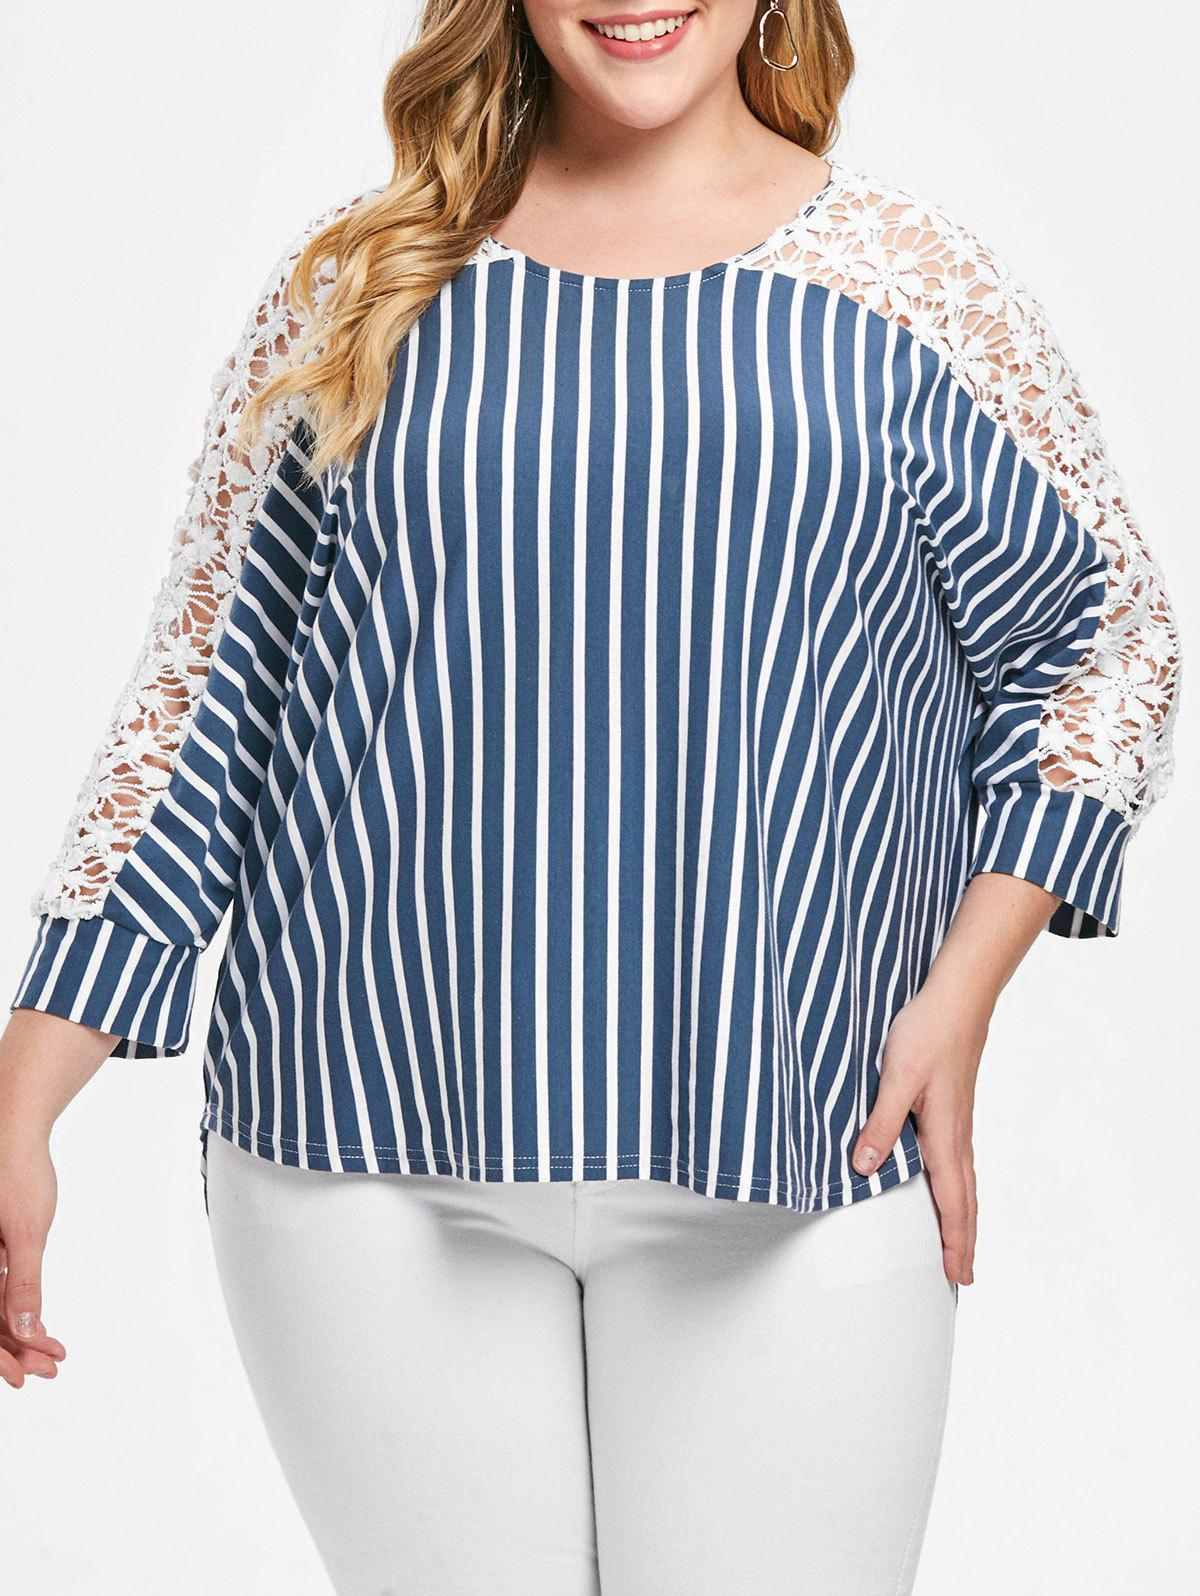 Sheer Lace Insert Plus Size Striped Top - multicolor 1X